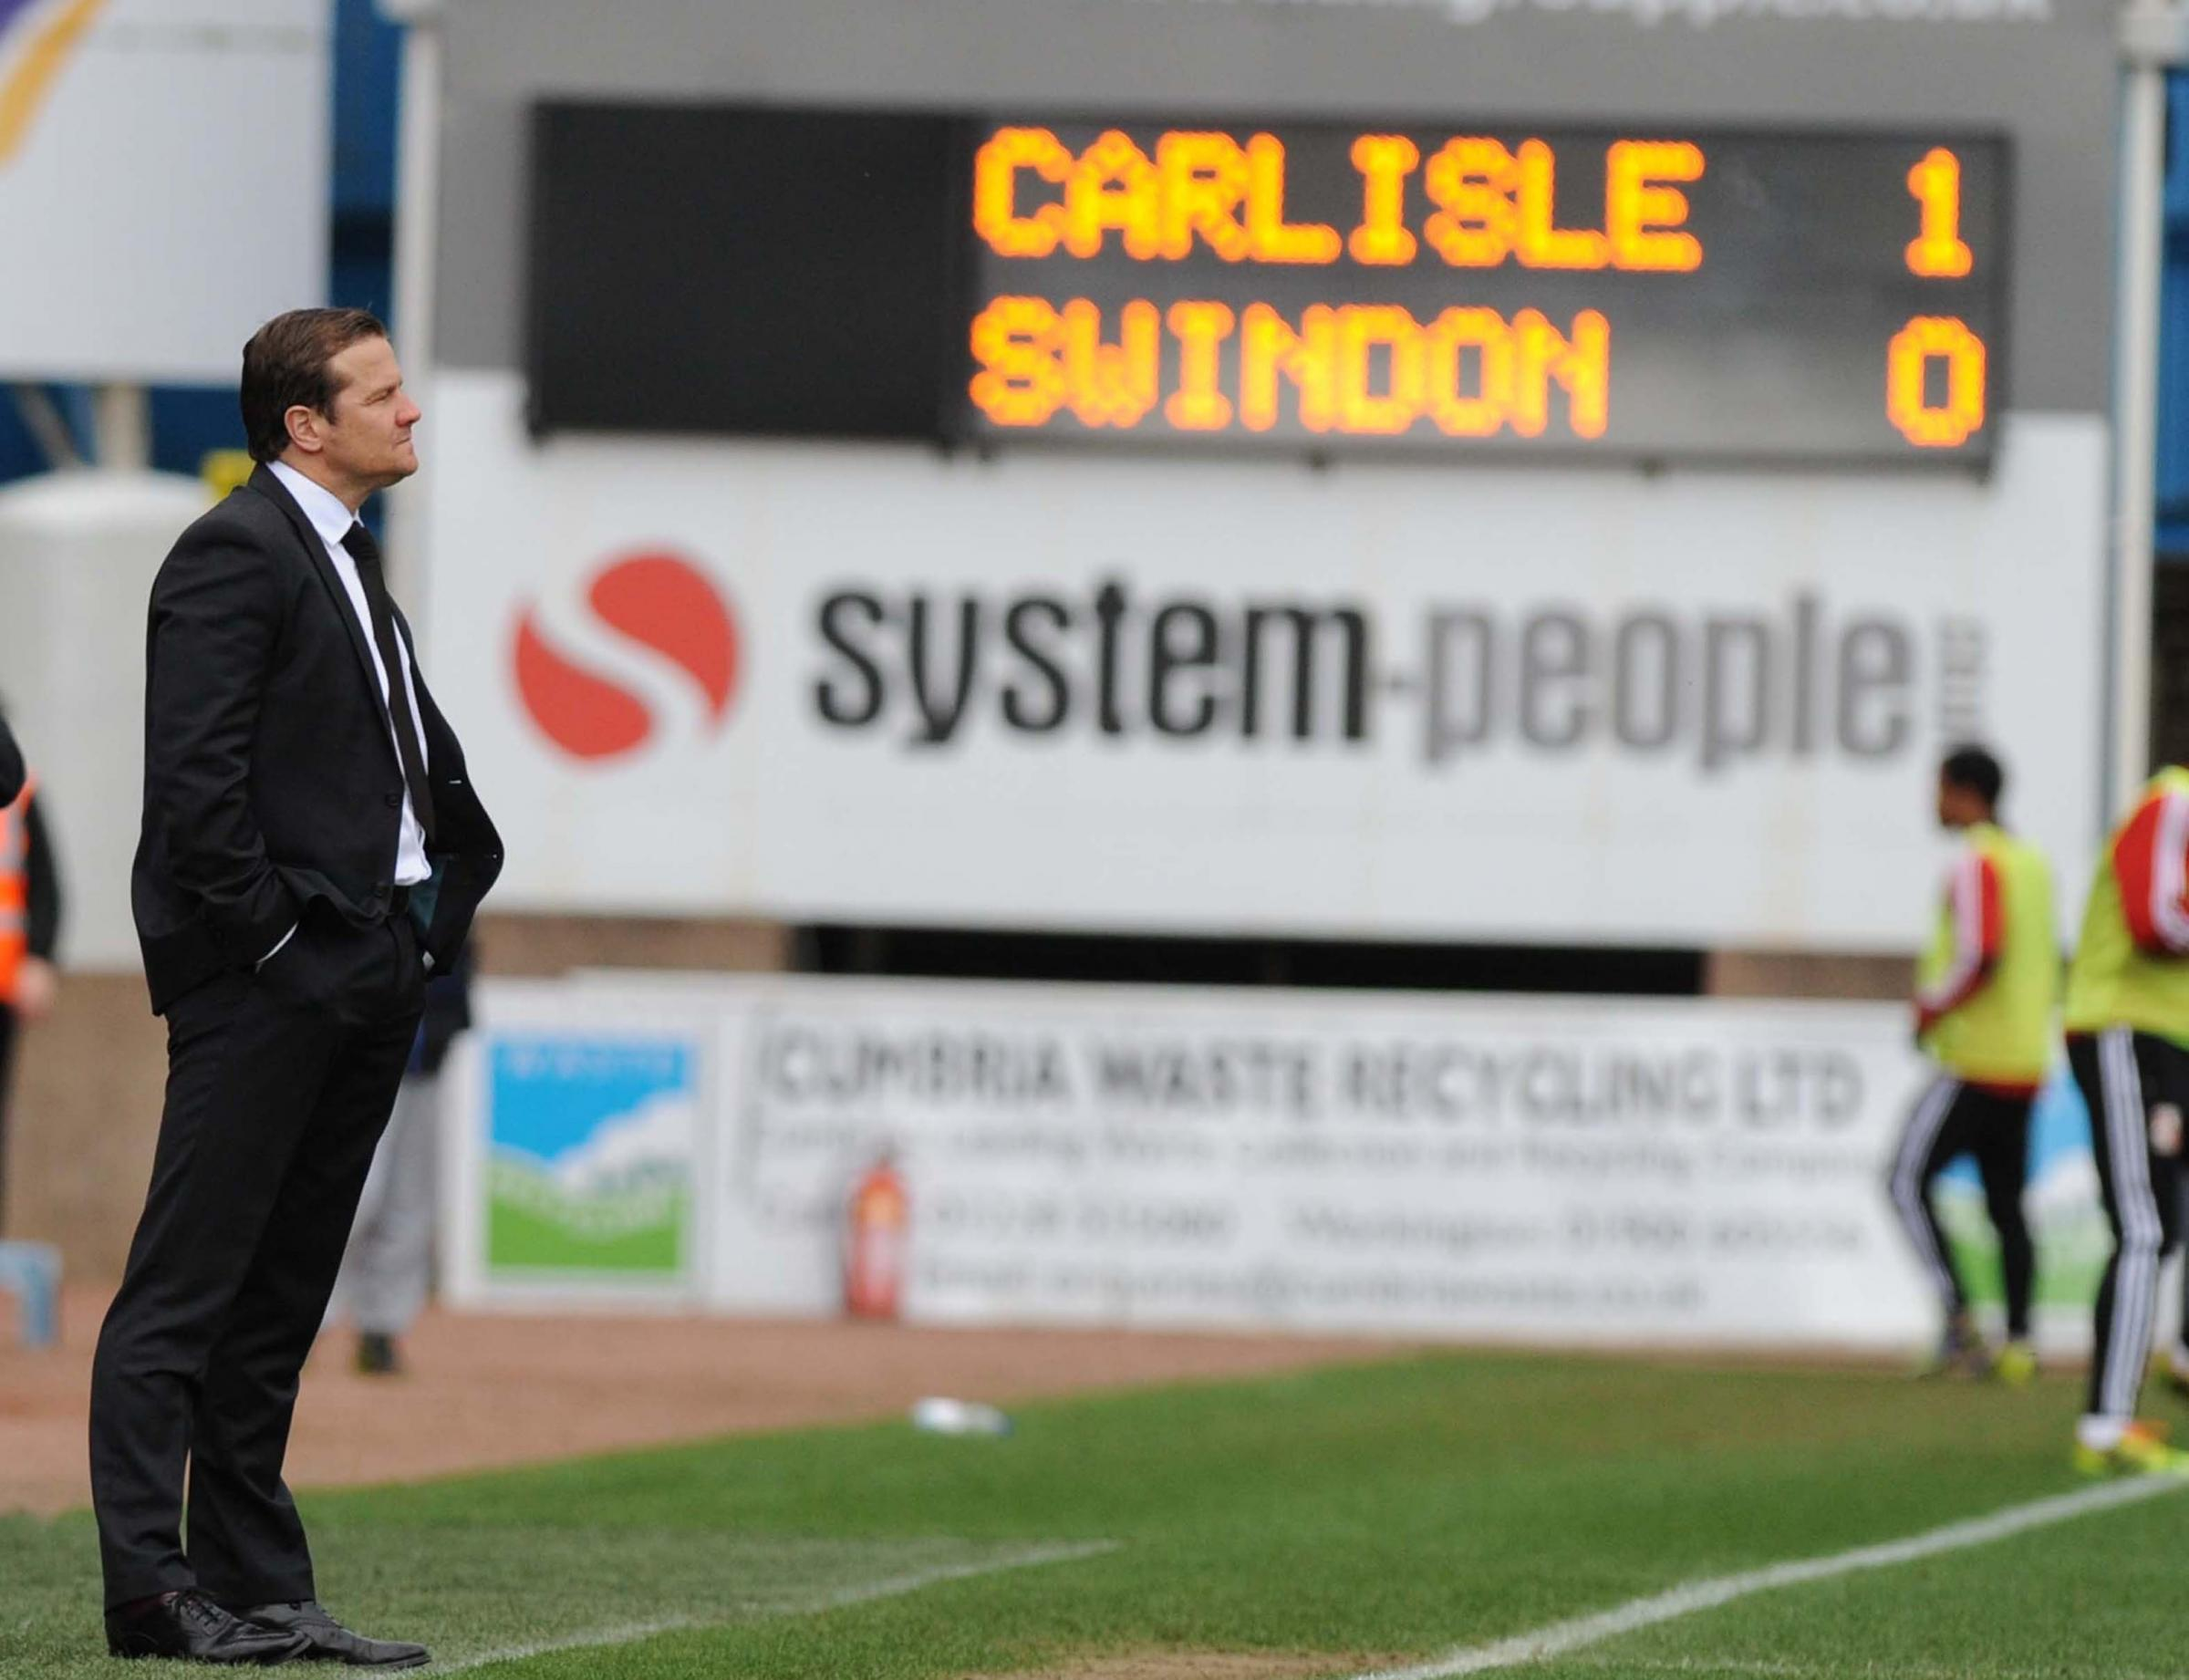 CARLISLE UTD 1 SWINDON TOWN 0: Town faced with a long road home